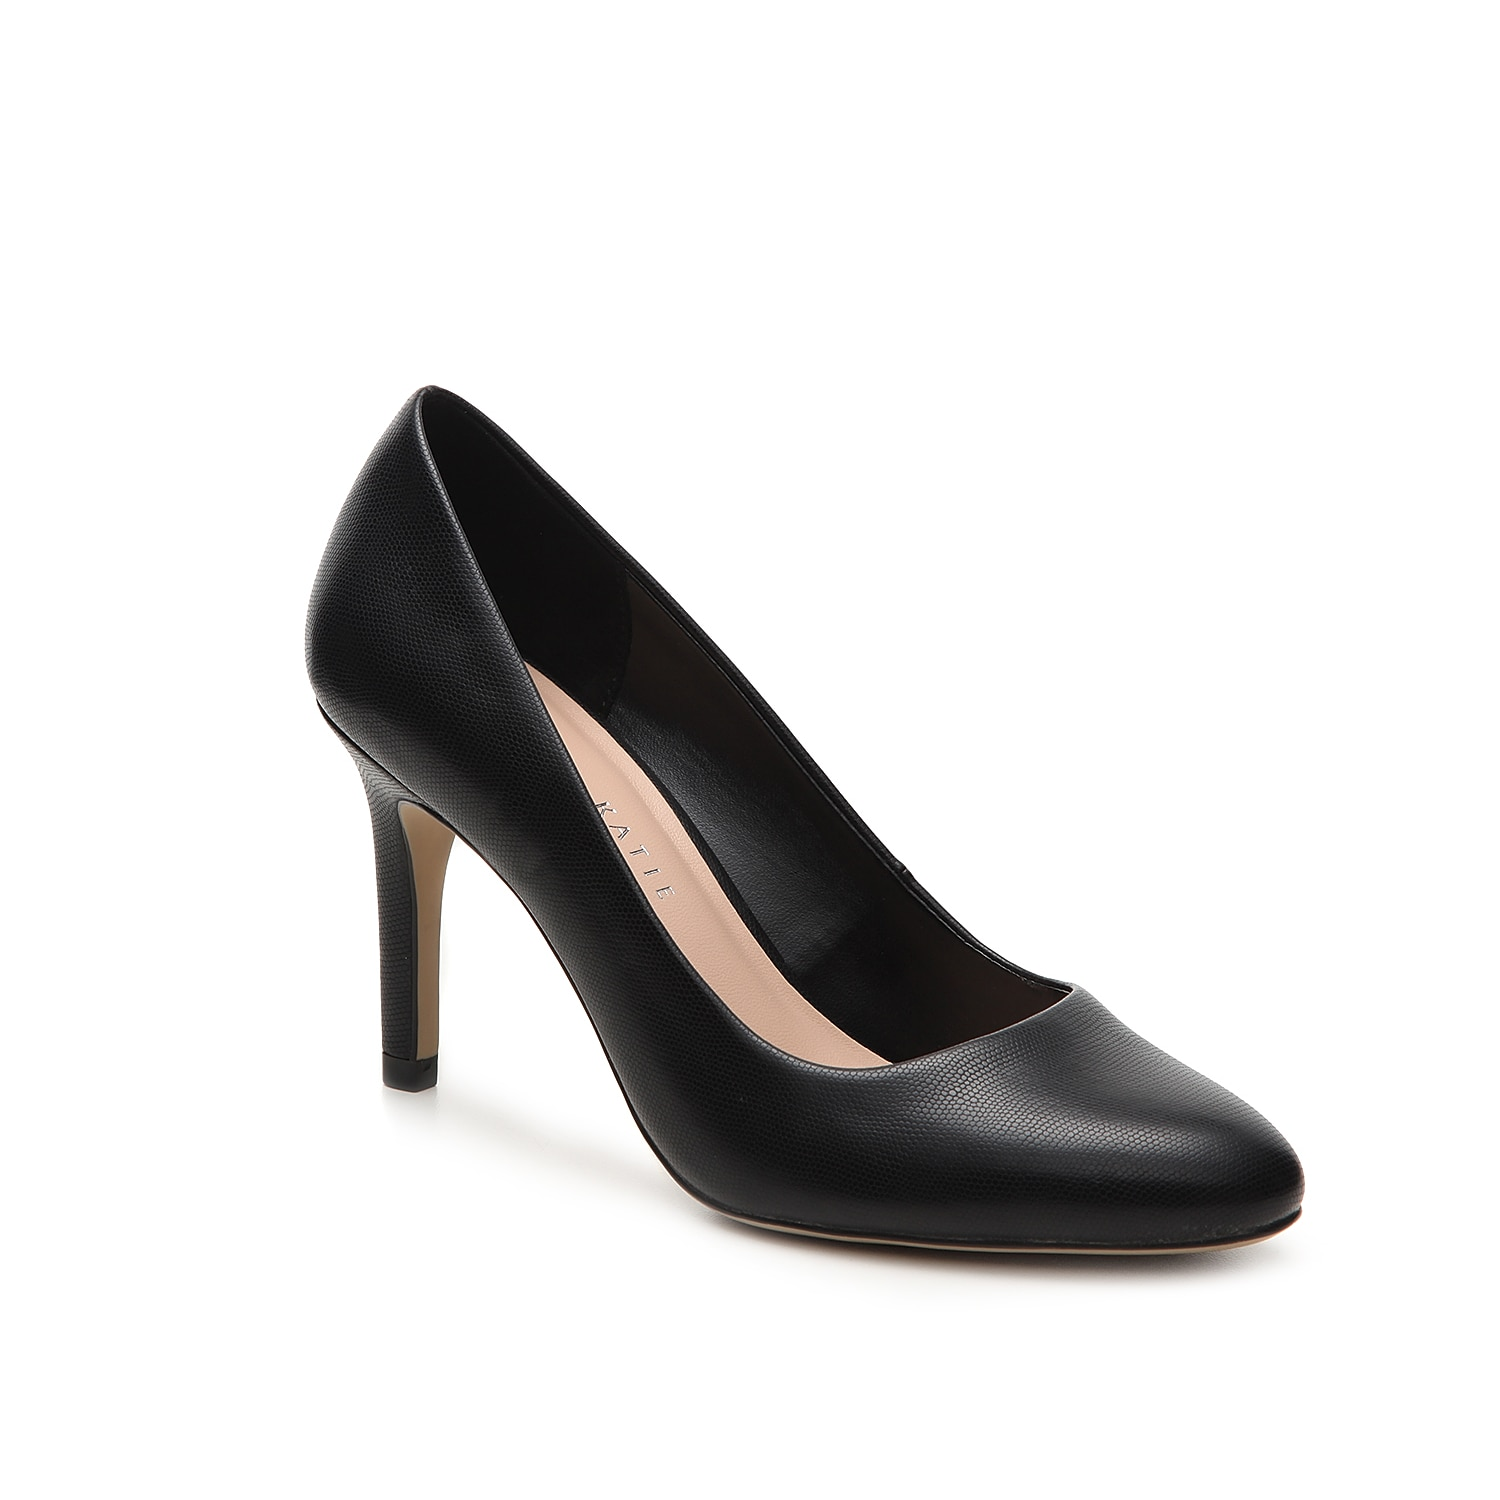 For a classic style that you can pair easily with your favorite skinny jeans or dresses, you\\\'ll want to add the Kelly & Katie Tiana pump to your heel collection.